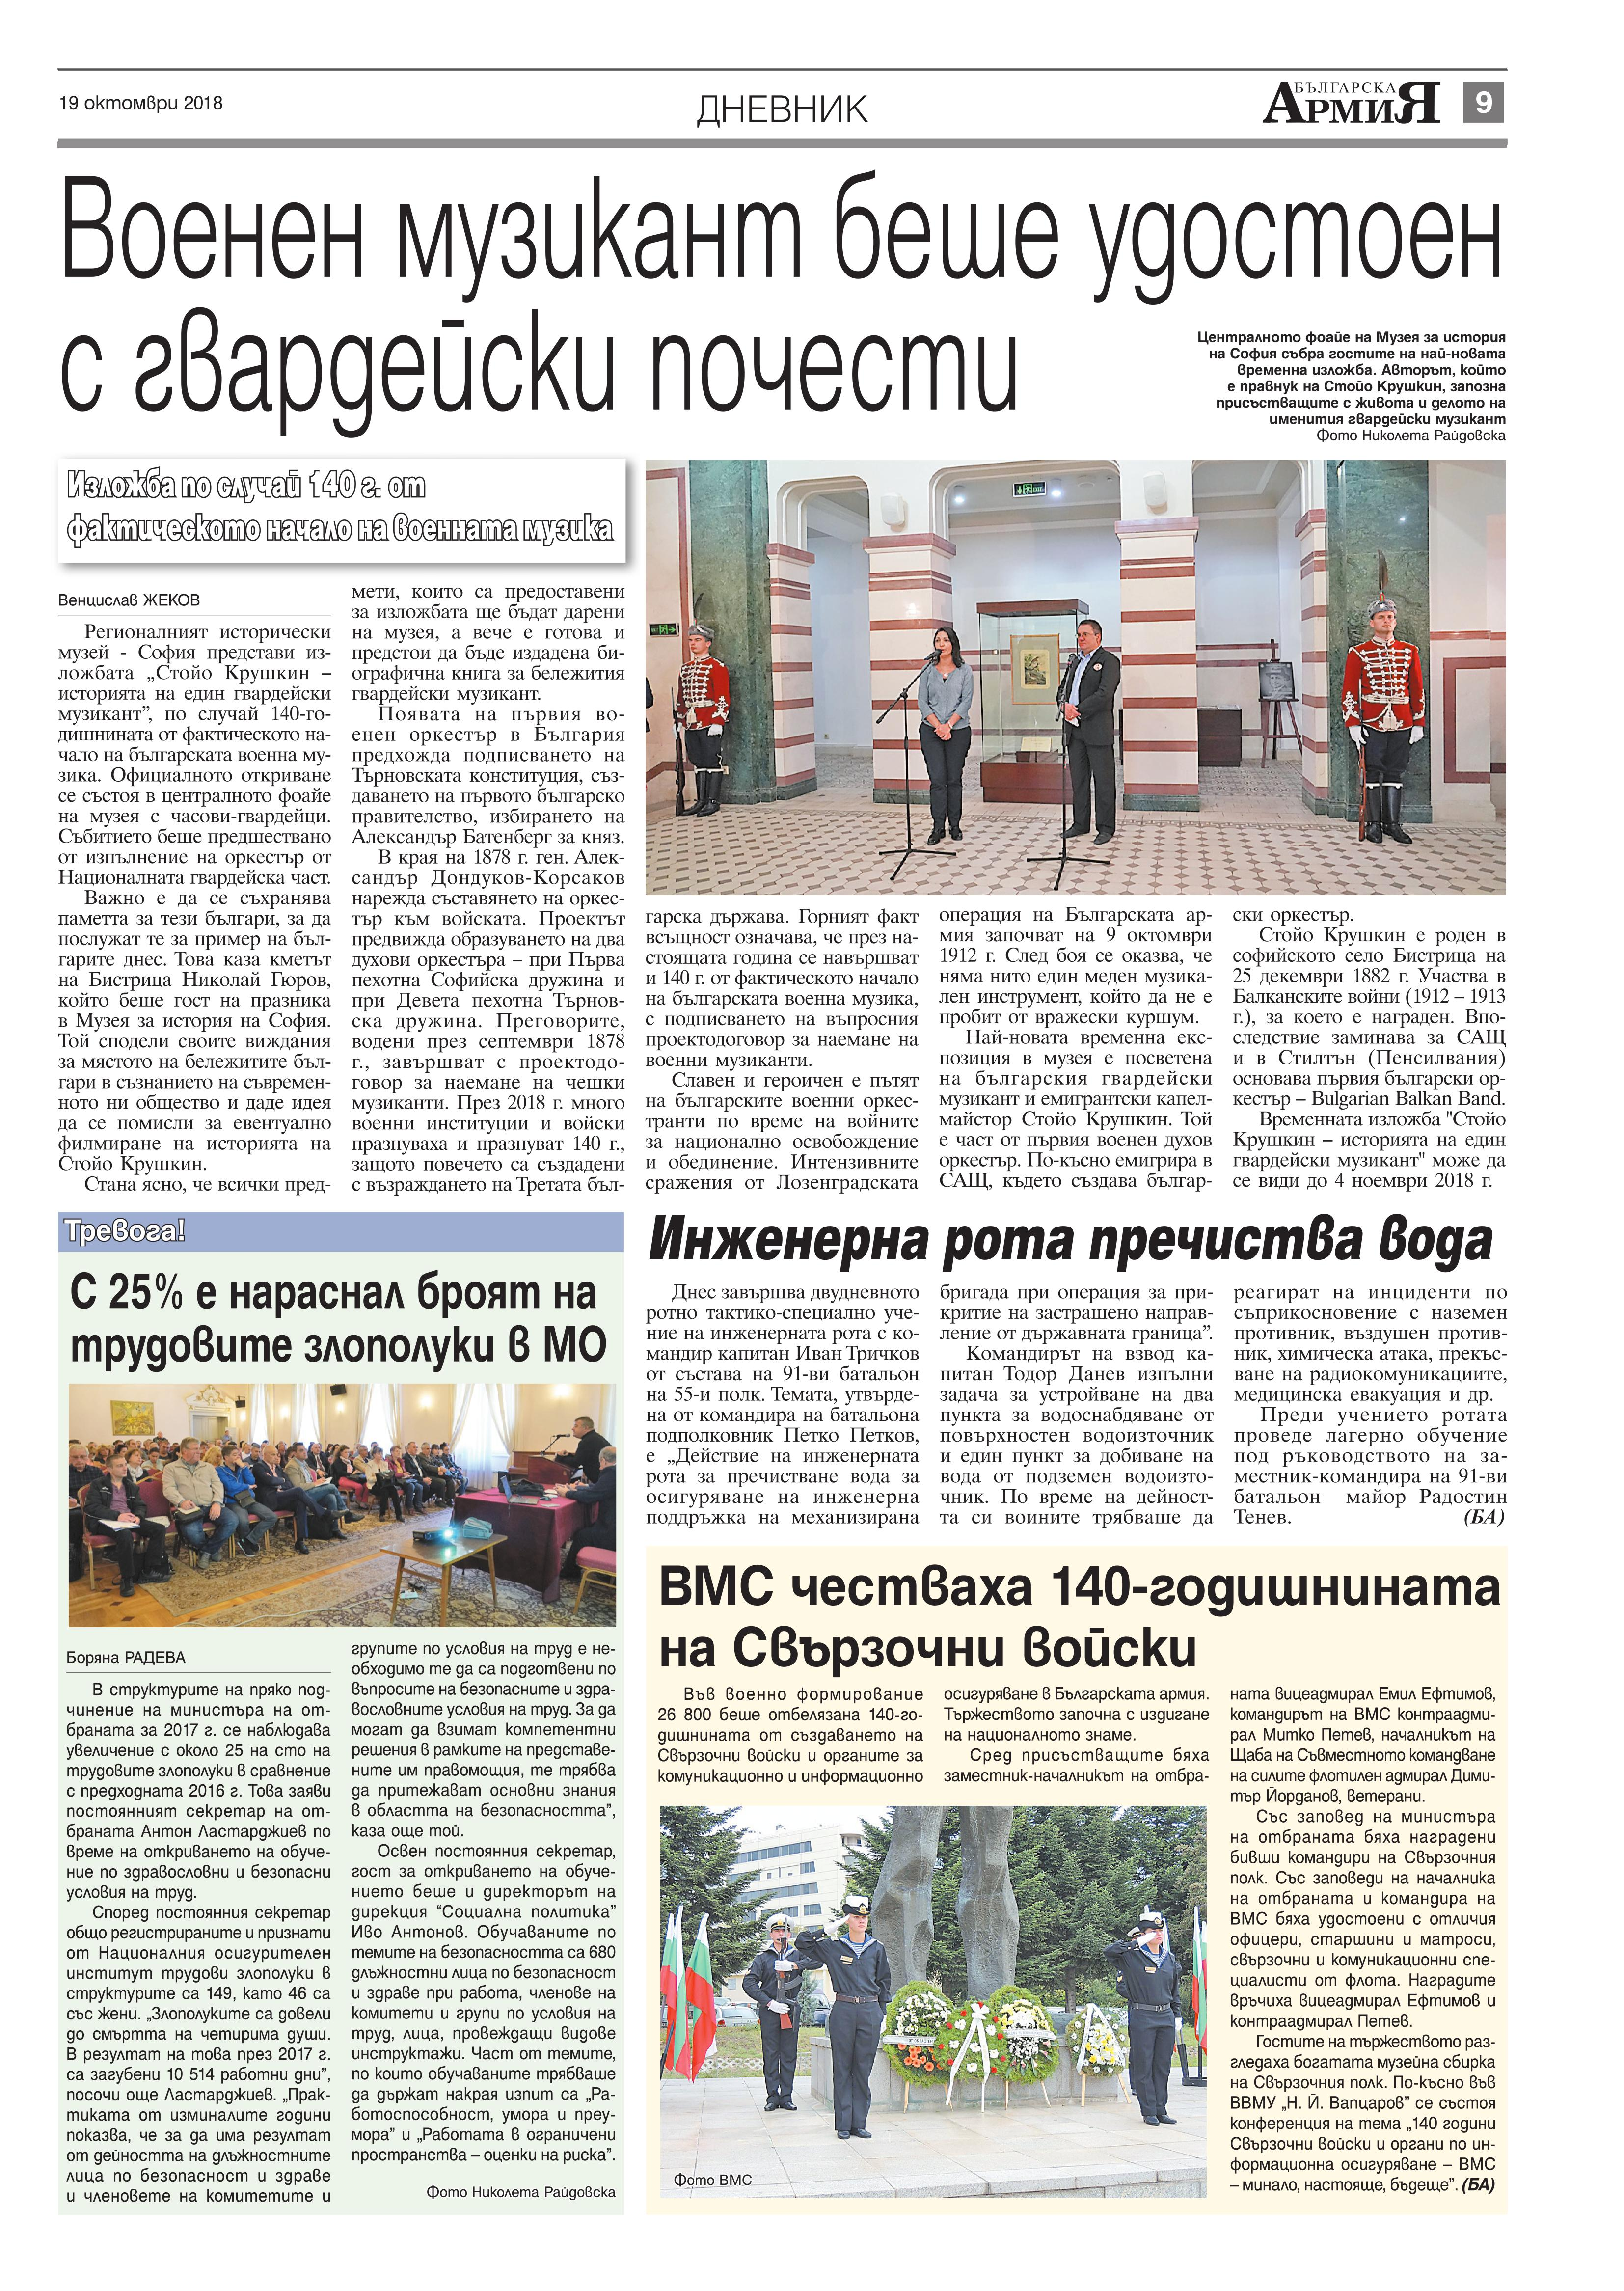 https://armymedia.bg/wp-content/uploads/2015/06/09.page1_-68.jpg